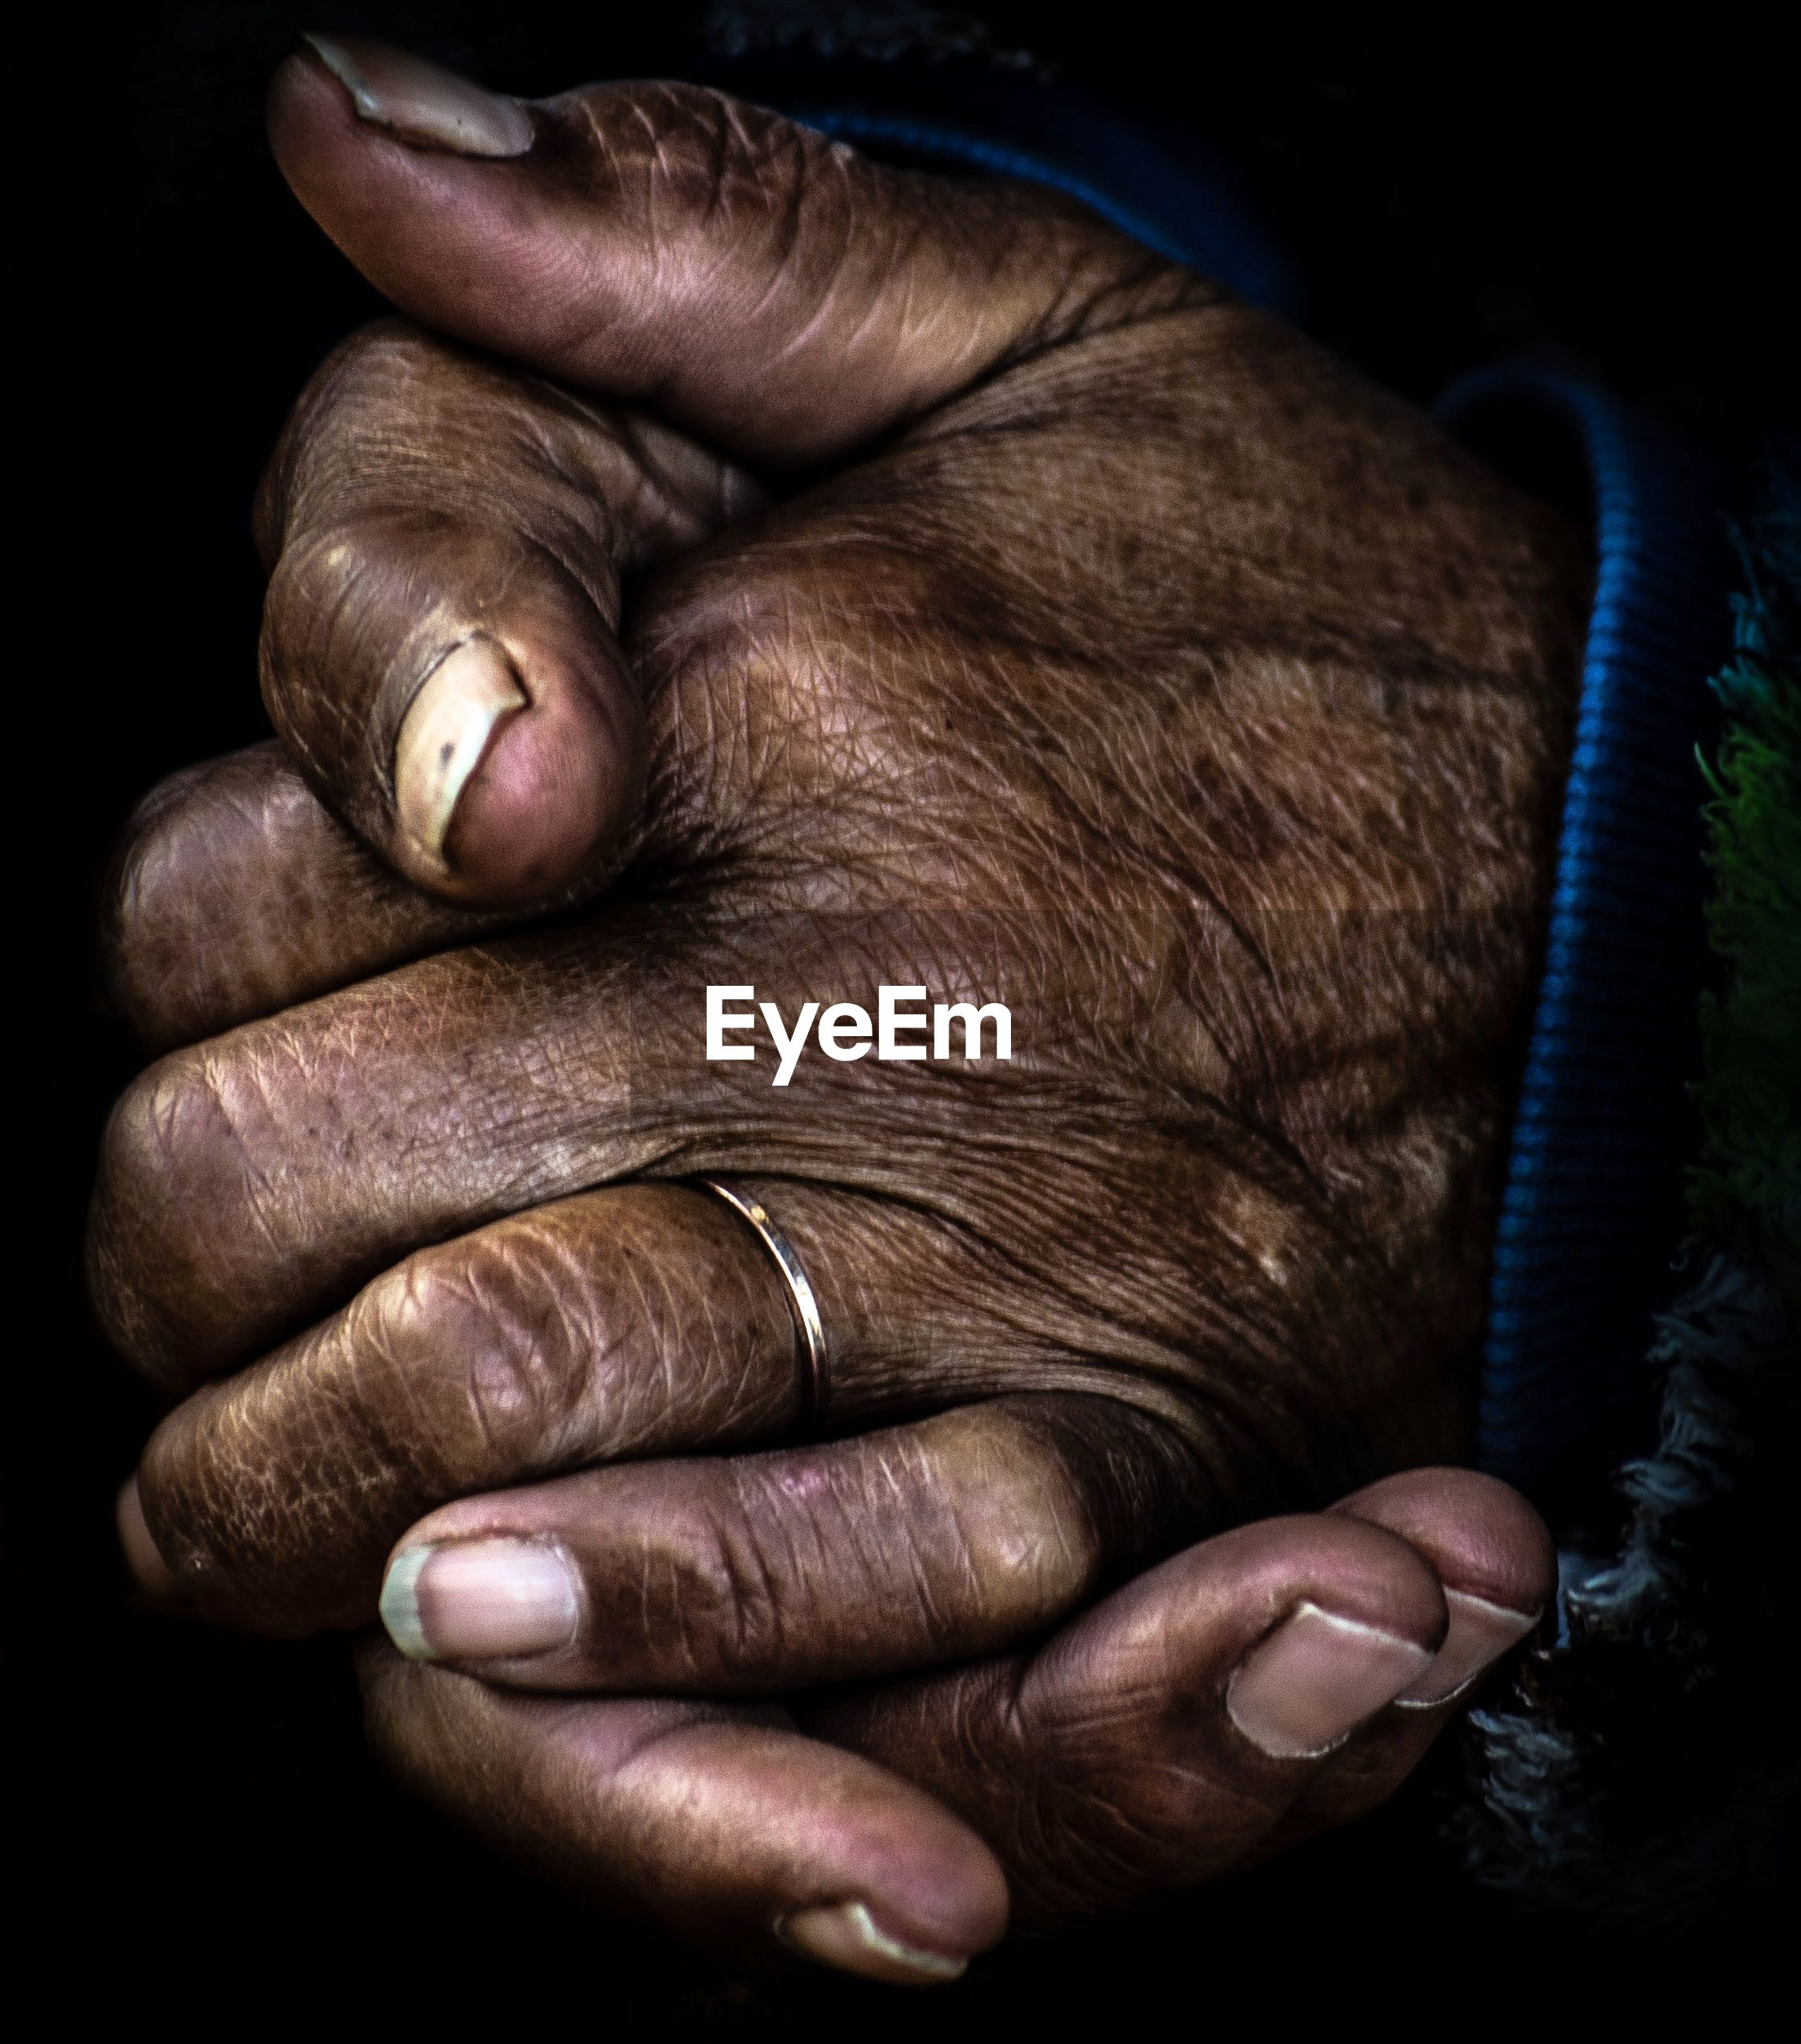 human hand, hand, human body part, one person, real people, indoors, close-up, one animal, men, holding, mammal, adult, midsection, finger, human finger, detail, body part, black background, care